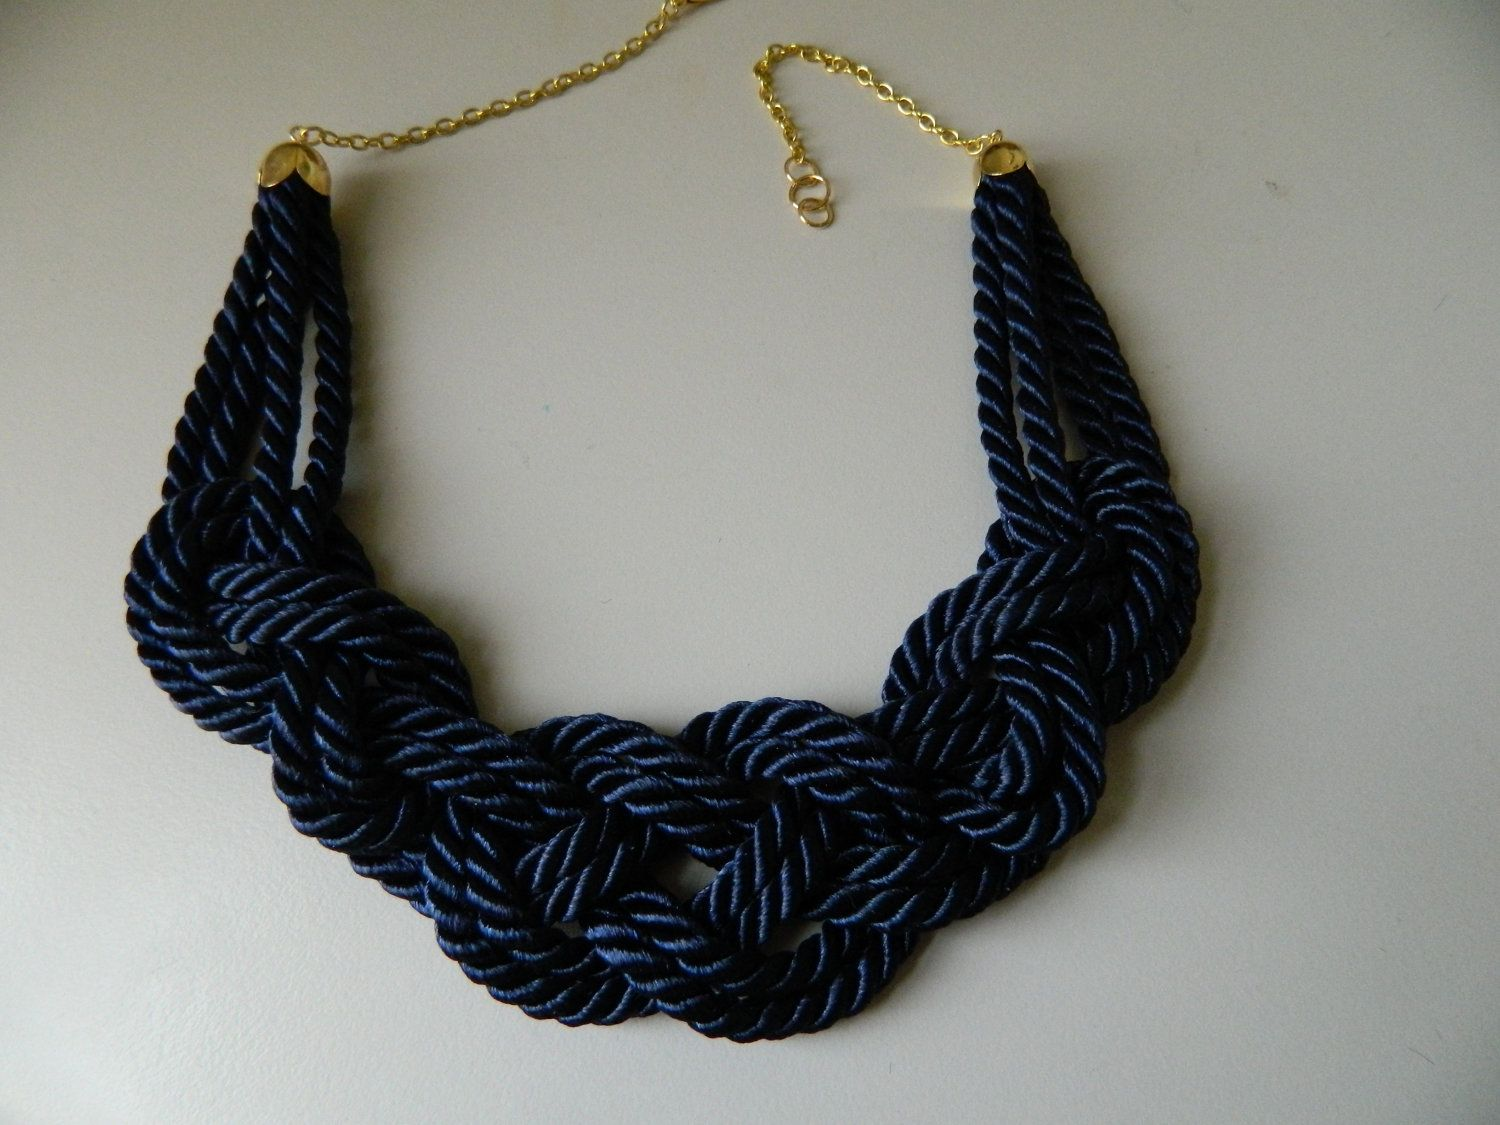 Navy Blue Sailor Knot /Japanese Knot Necklace/choker, Rope Necklace, Nautical Necklace. $17.00, via Etsy.